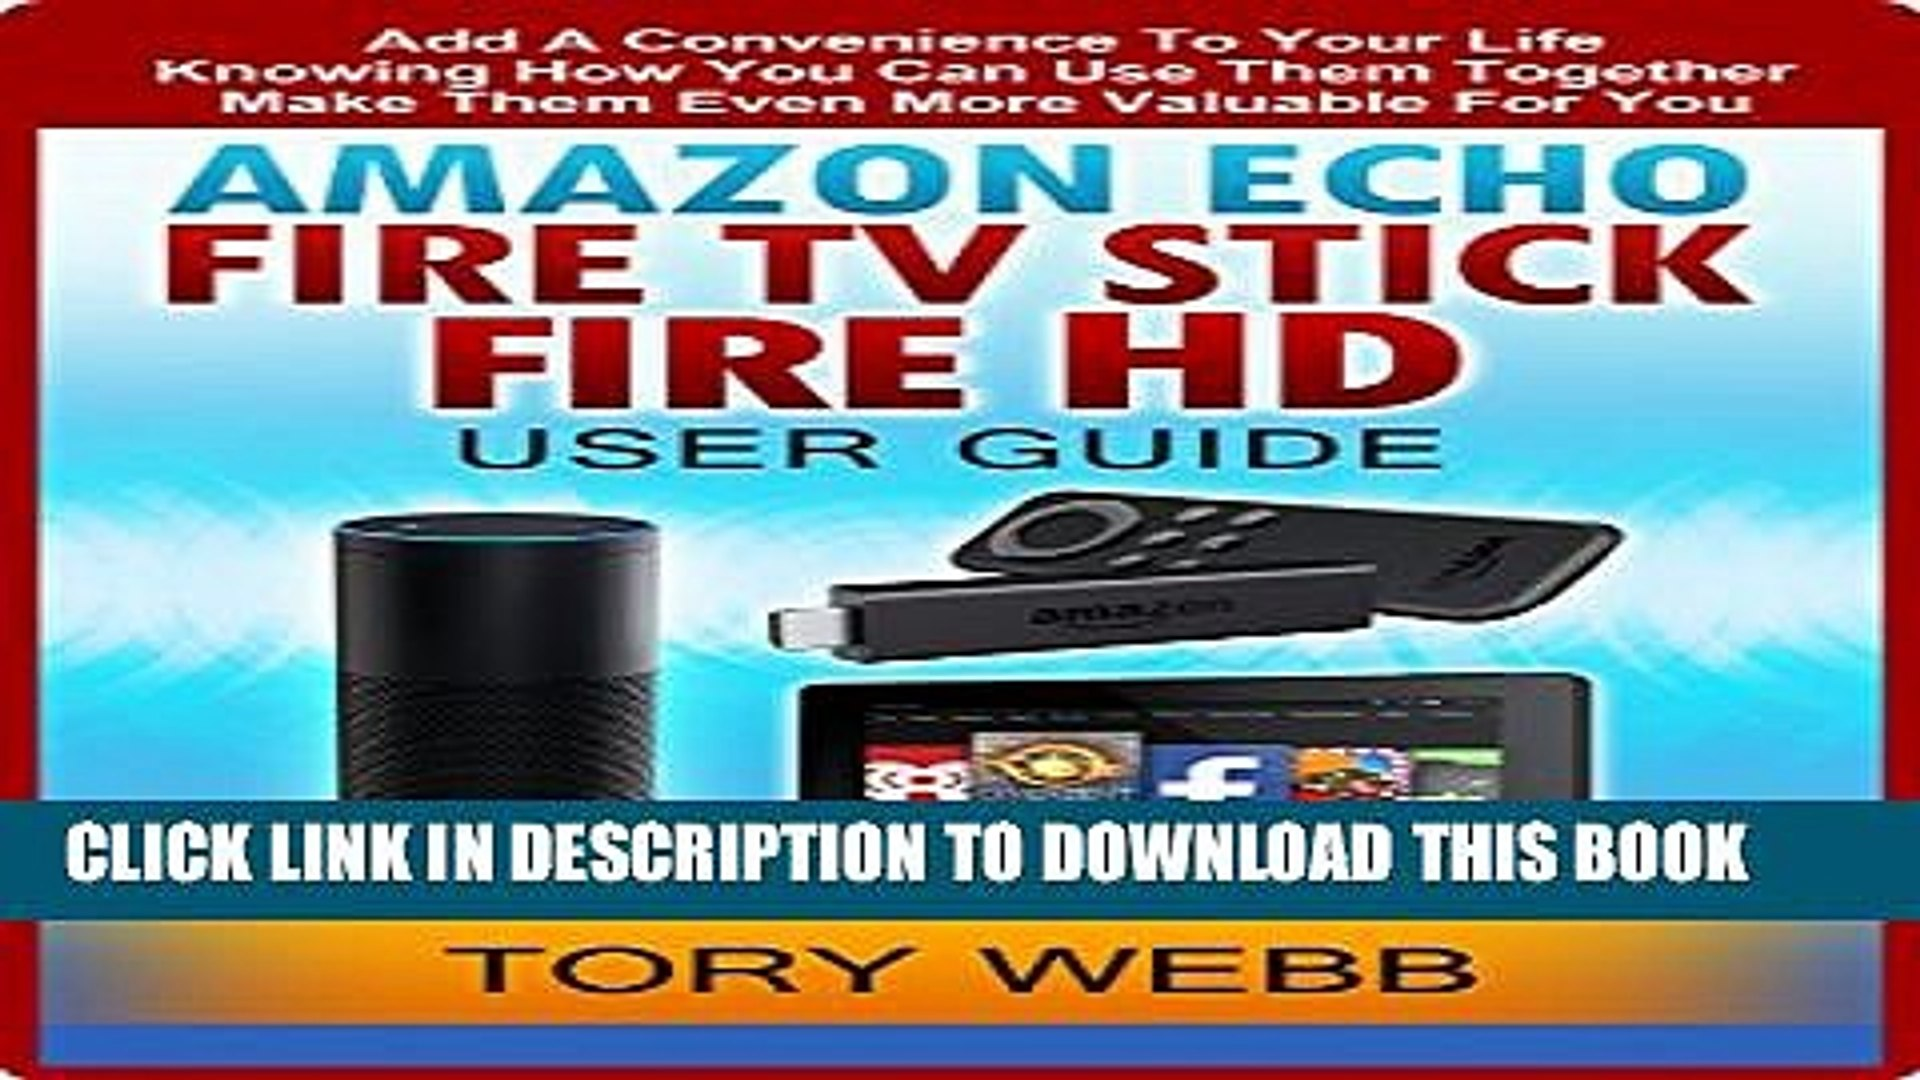 [PDF] Amazon Echo, Fire TV Stick, Fire HD User Guide: Add A Convenience To Your Life, Knowing How